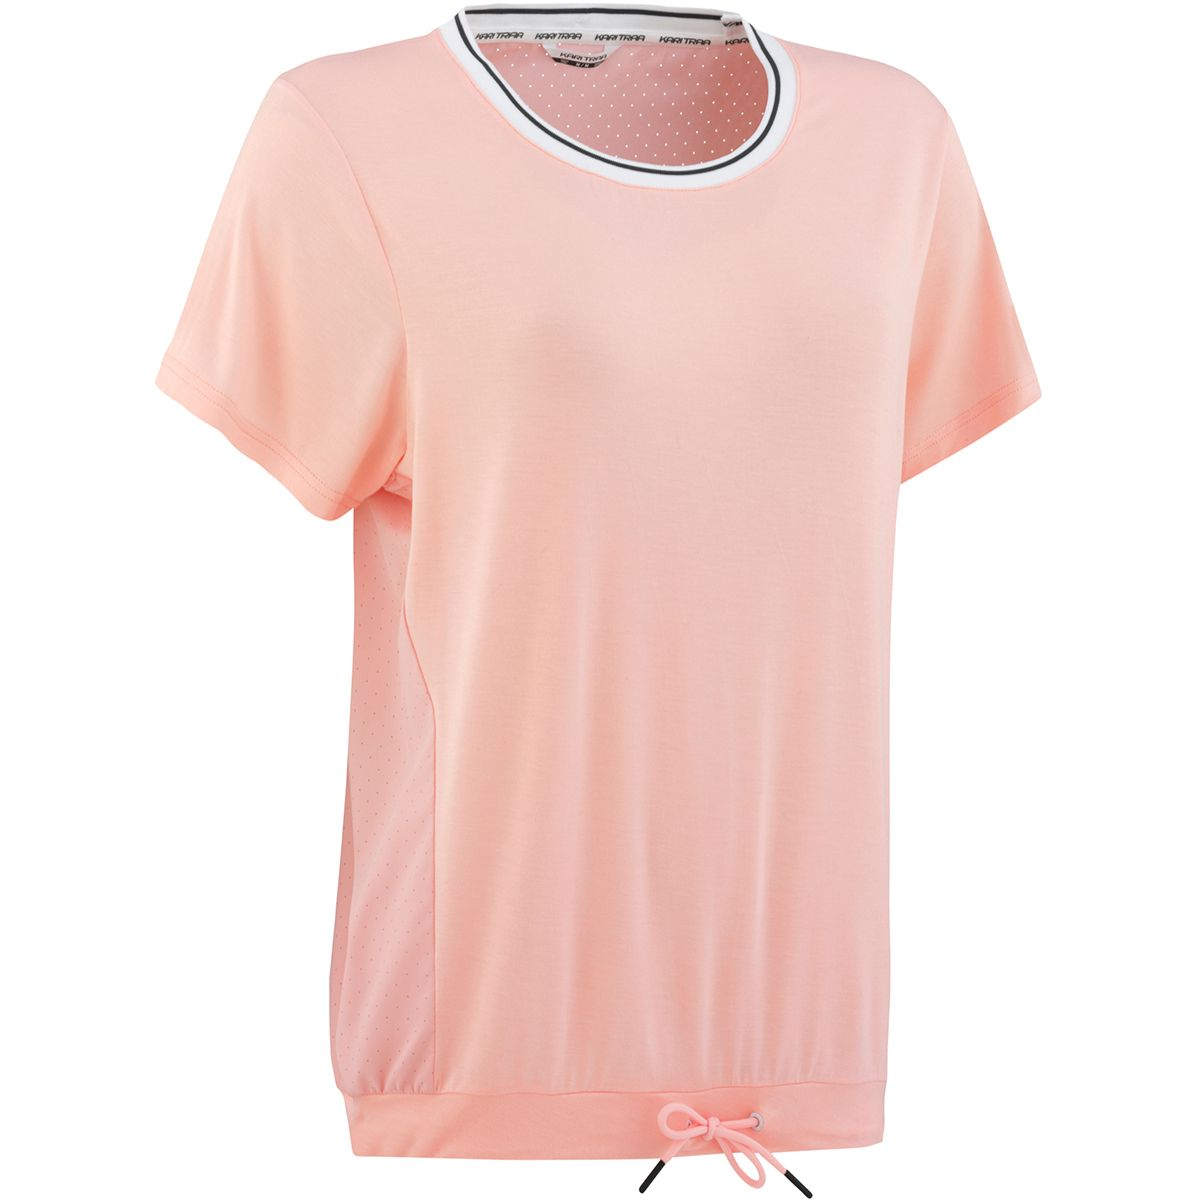 Kari Traa Damen Rong T-Shirt (Größe XS, Orange) | T-Shirts Funktion > Damen